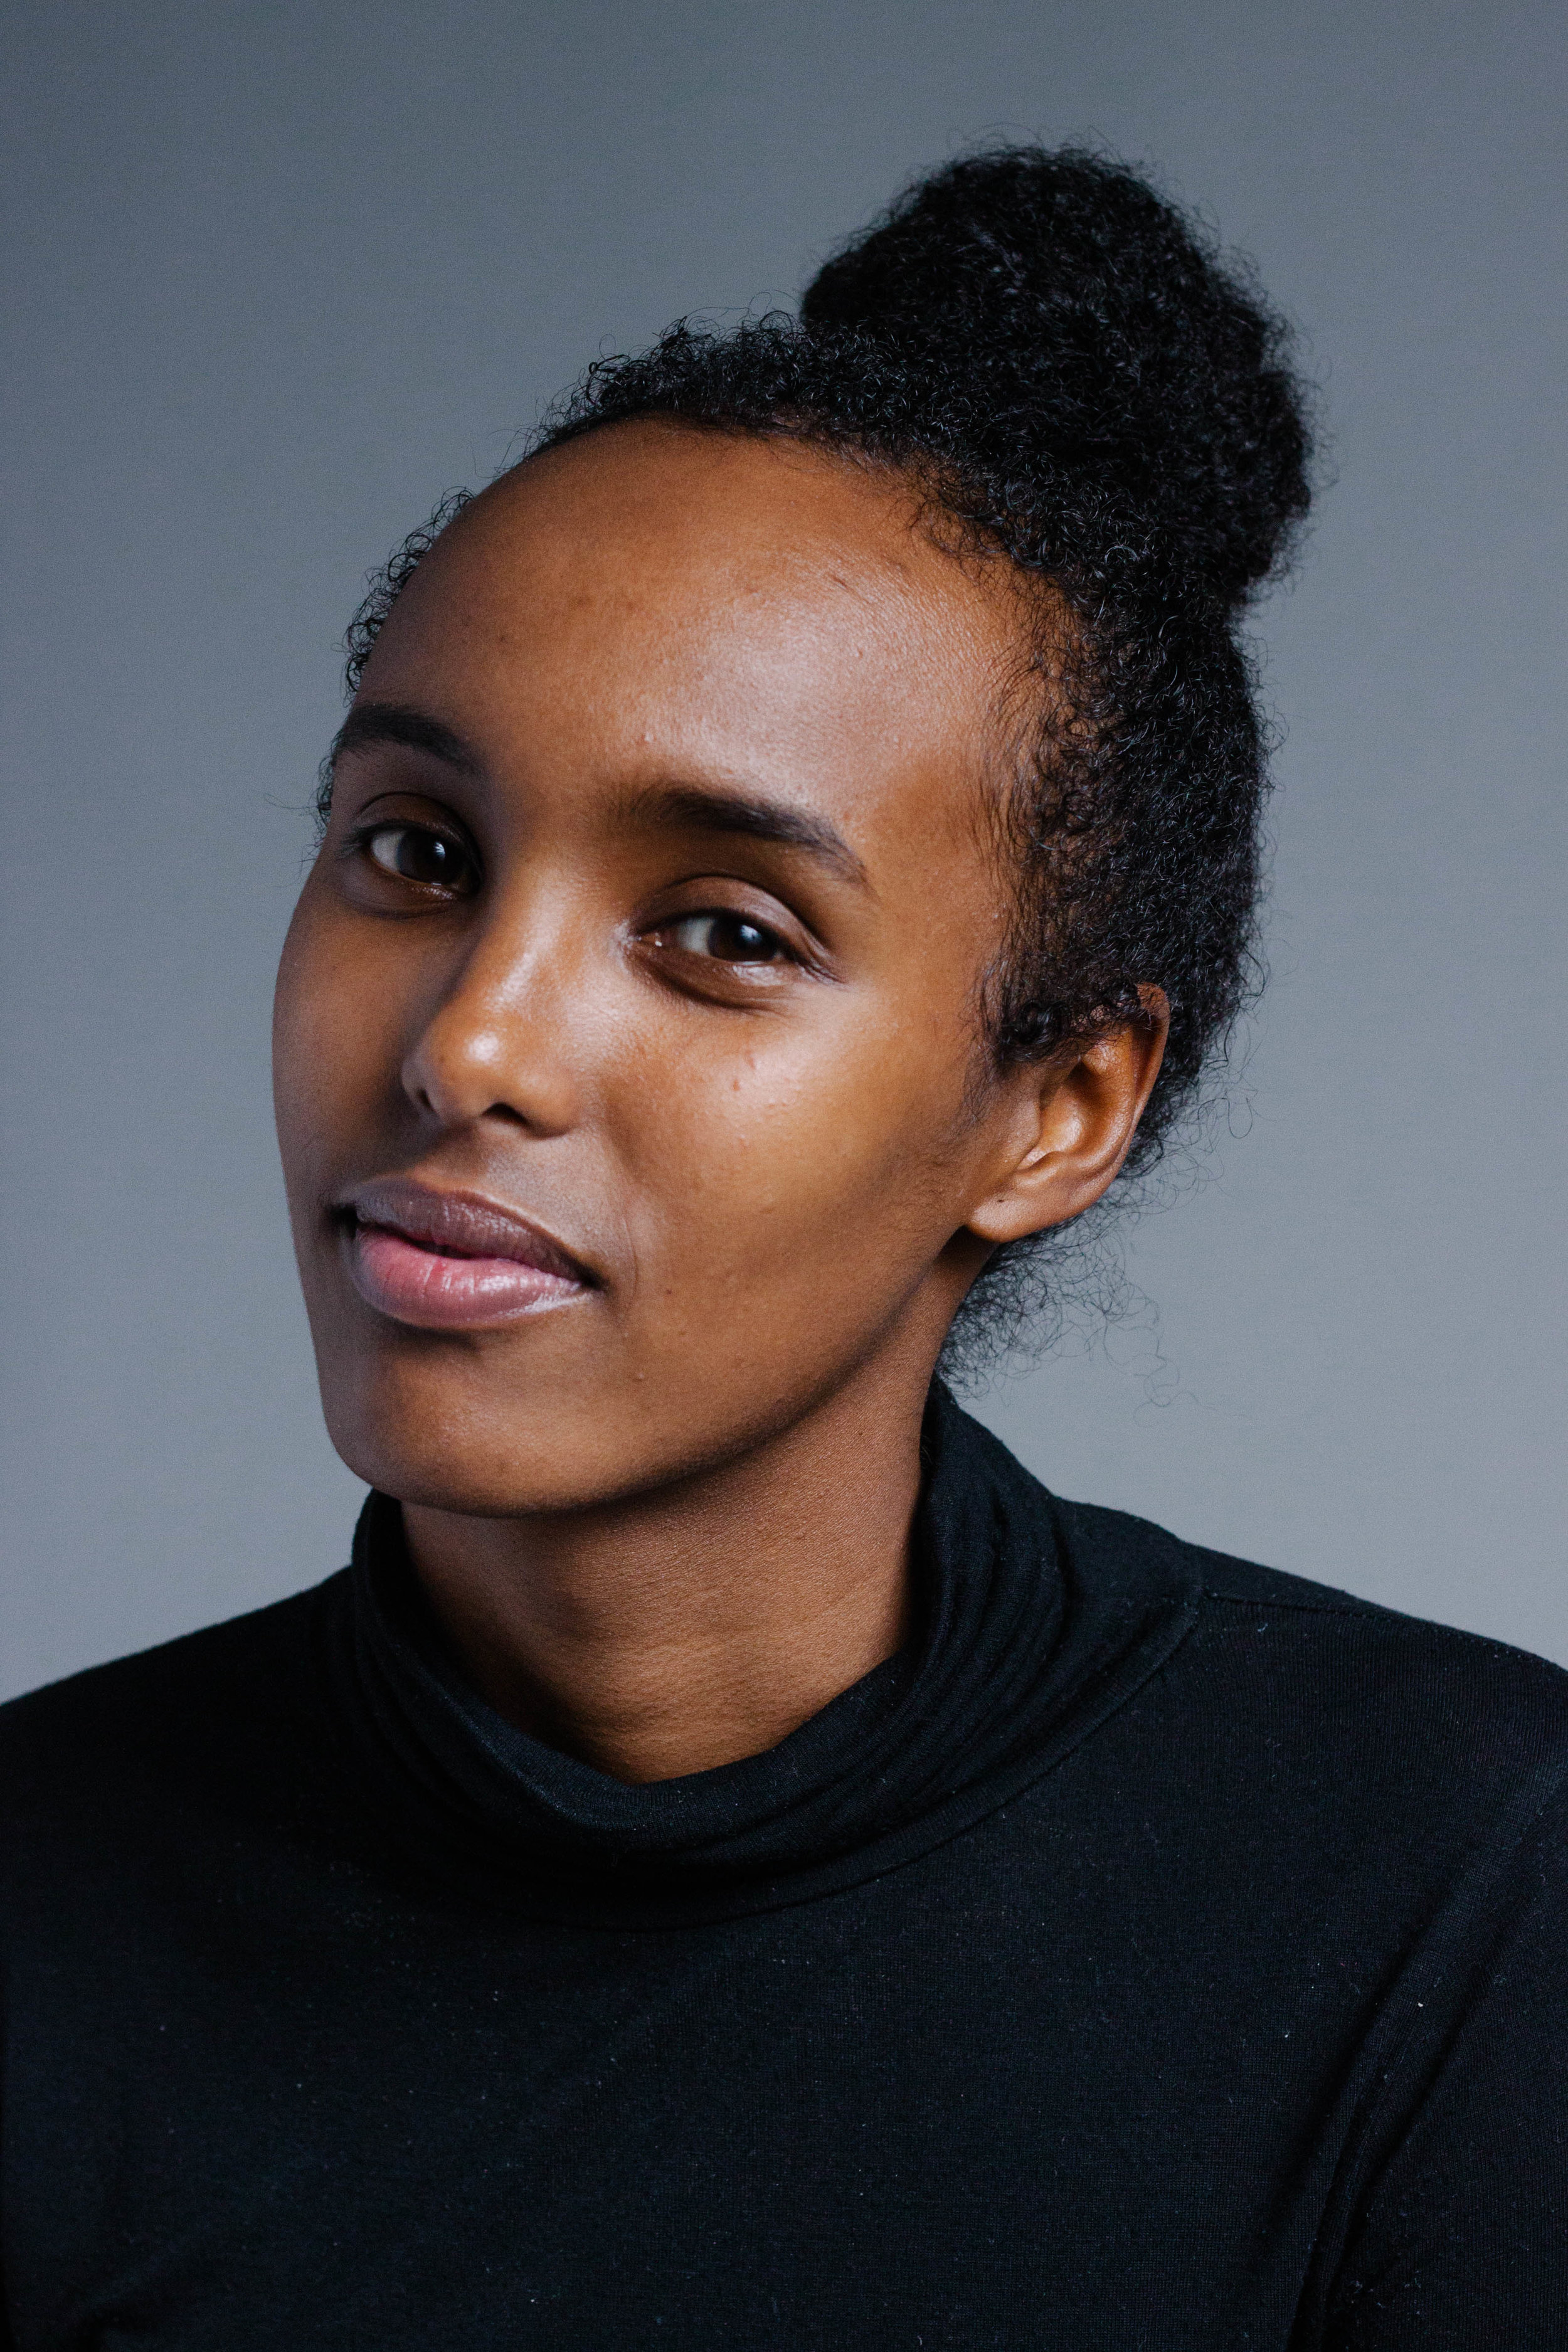 Initially, I wanted to say no, but oh yeah, one time someone called me a N***** in the sixth grade. - -Sagal, answering whether or not she